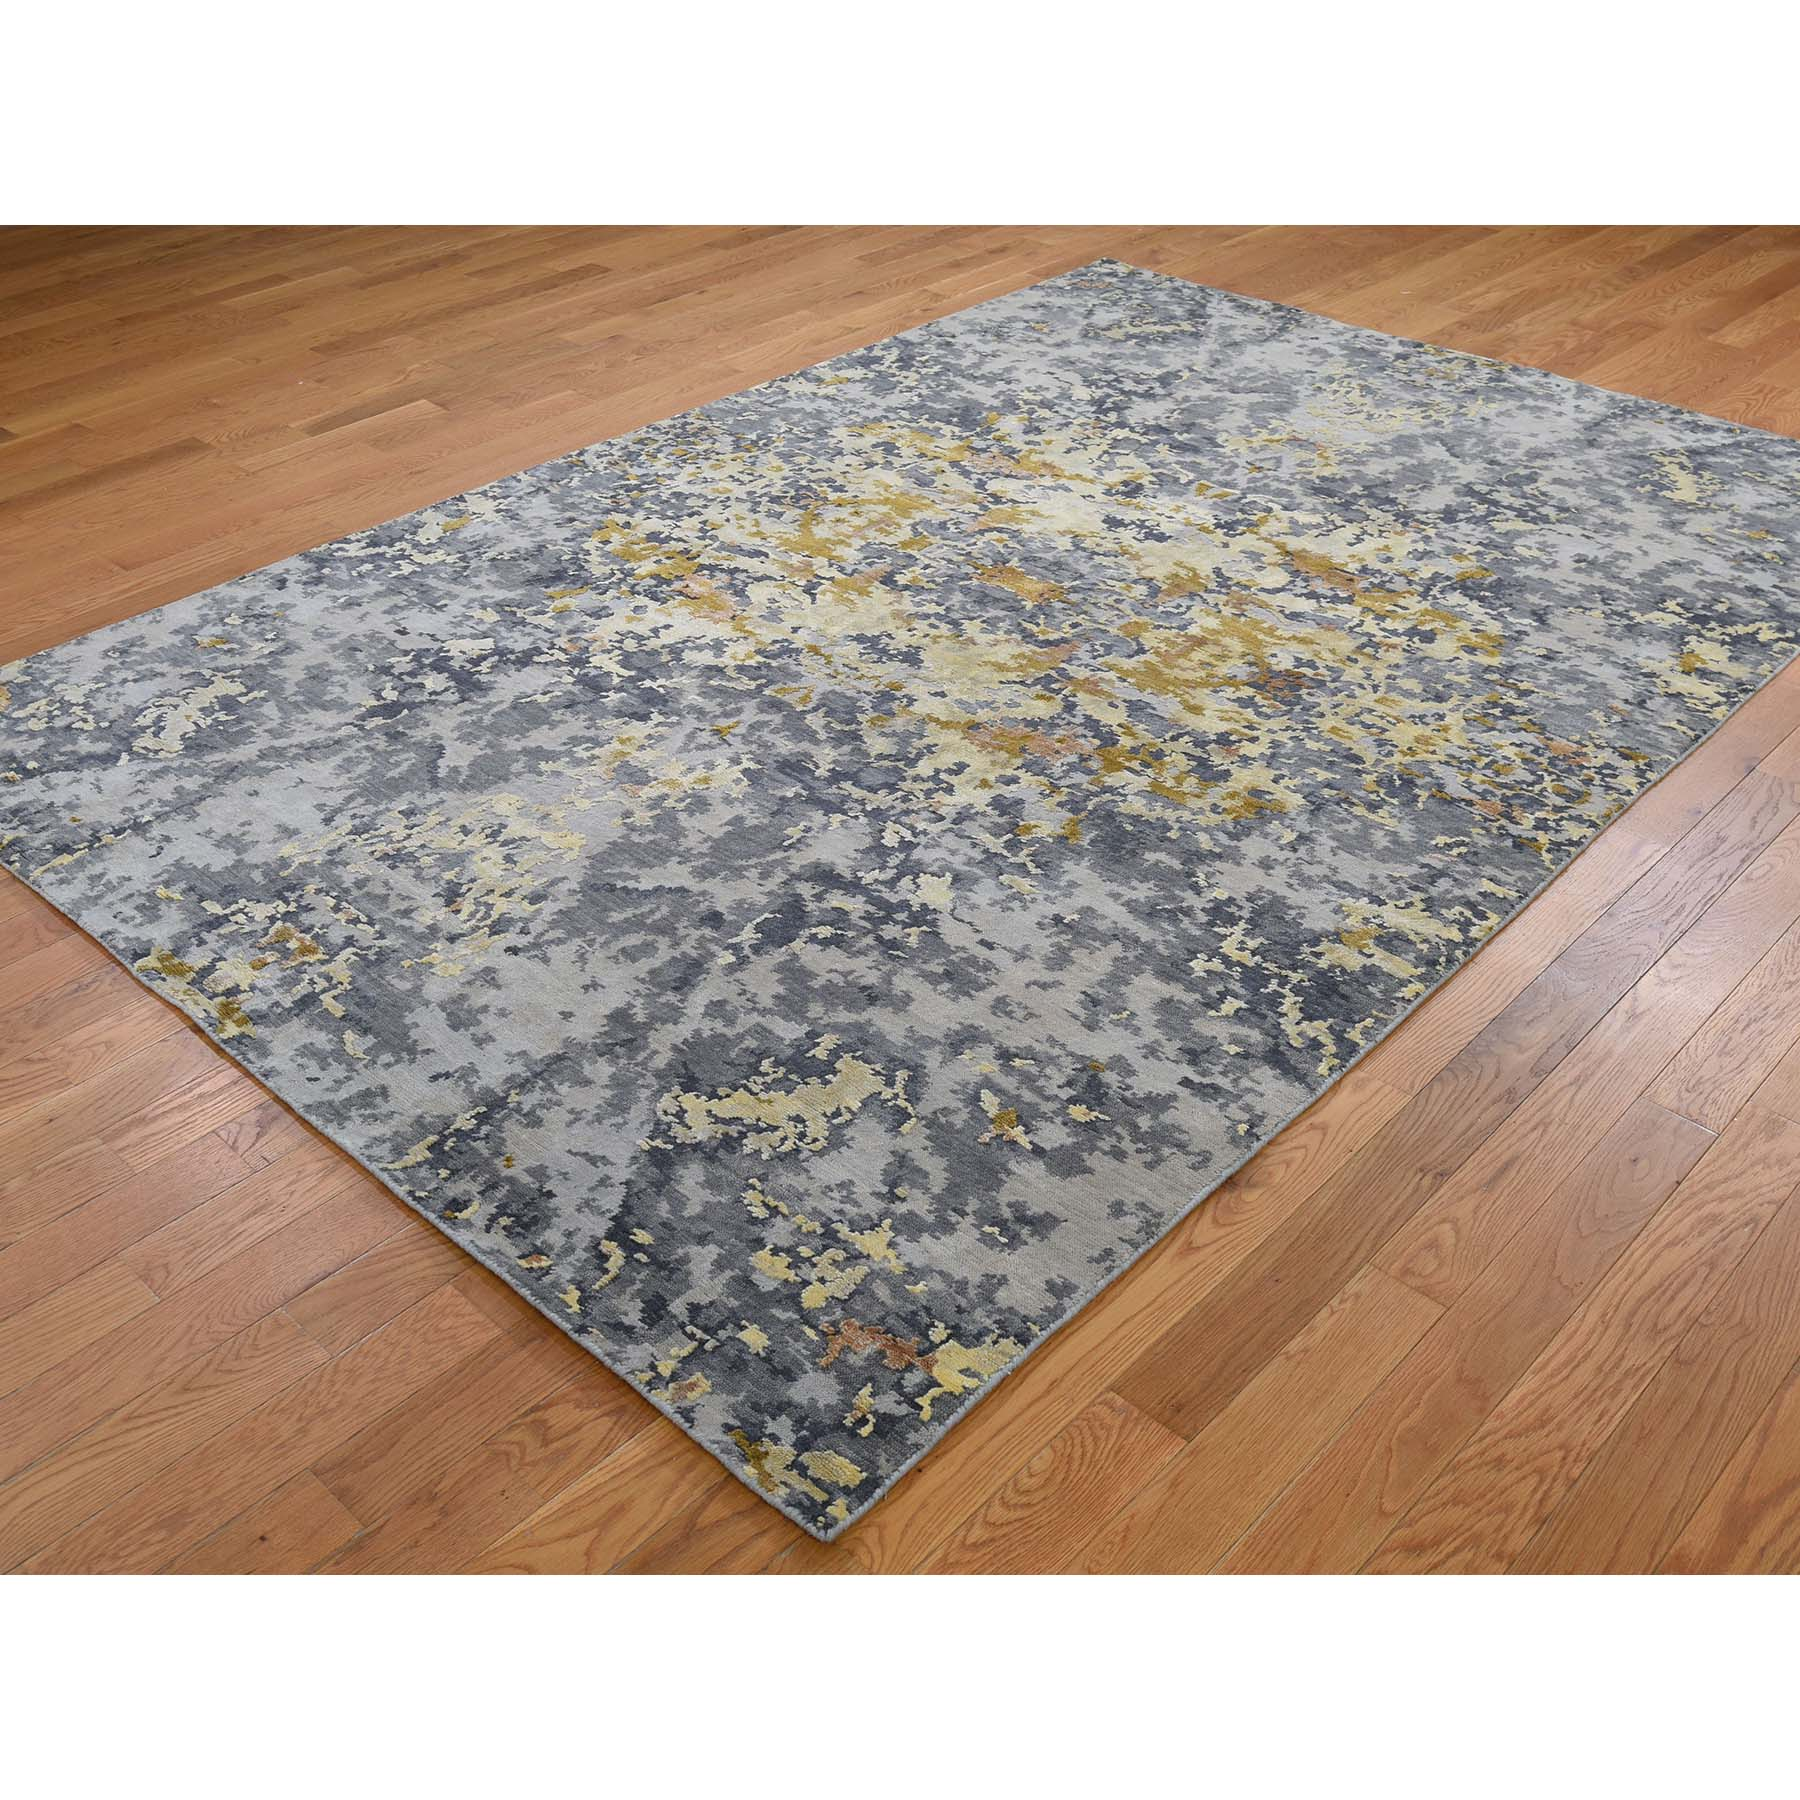 6-1 x8-10  Wool And Silk Abstract Design Hand-Knotted Oriental Rug